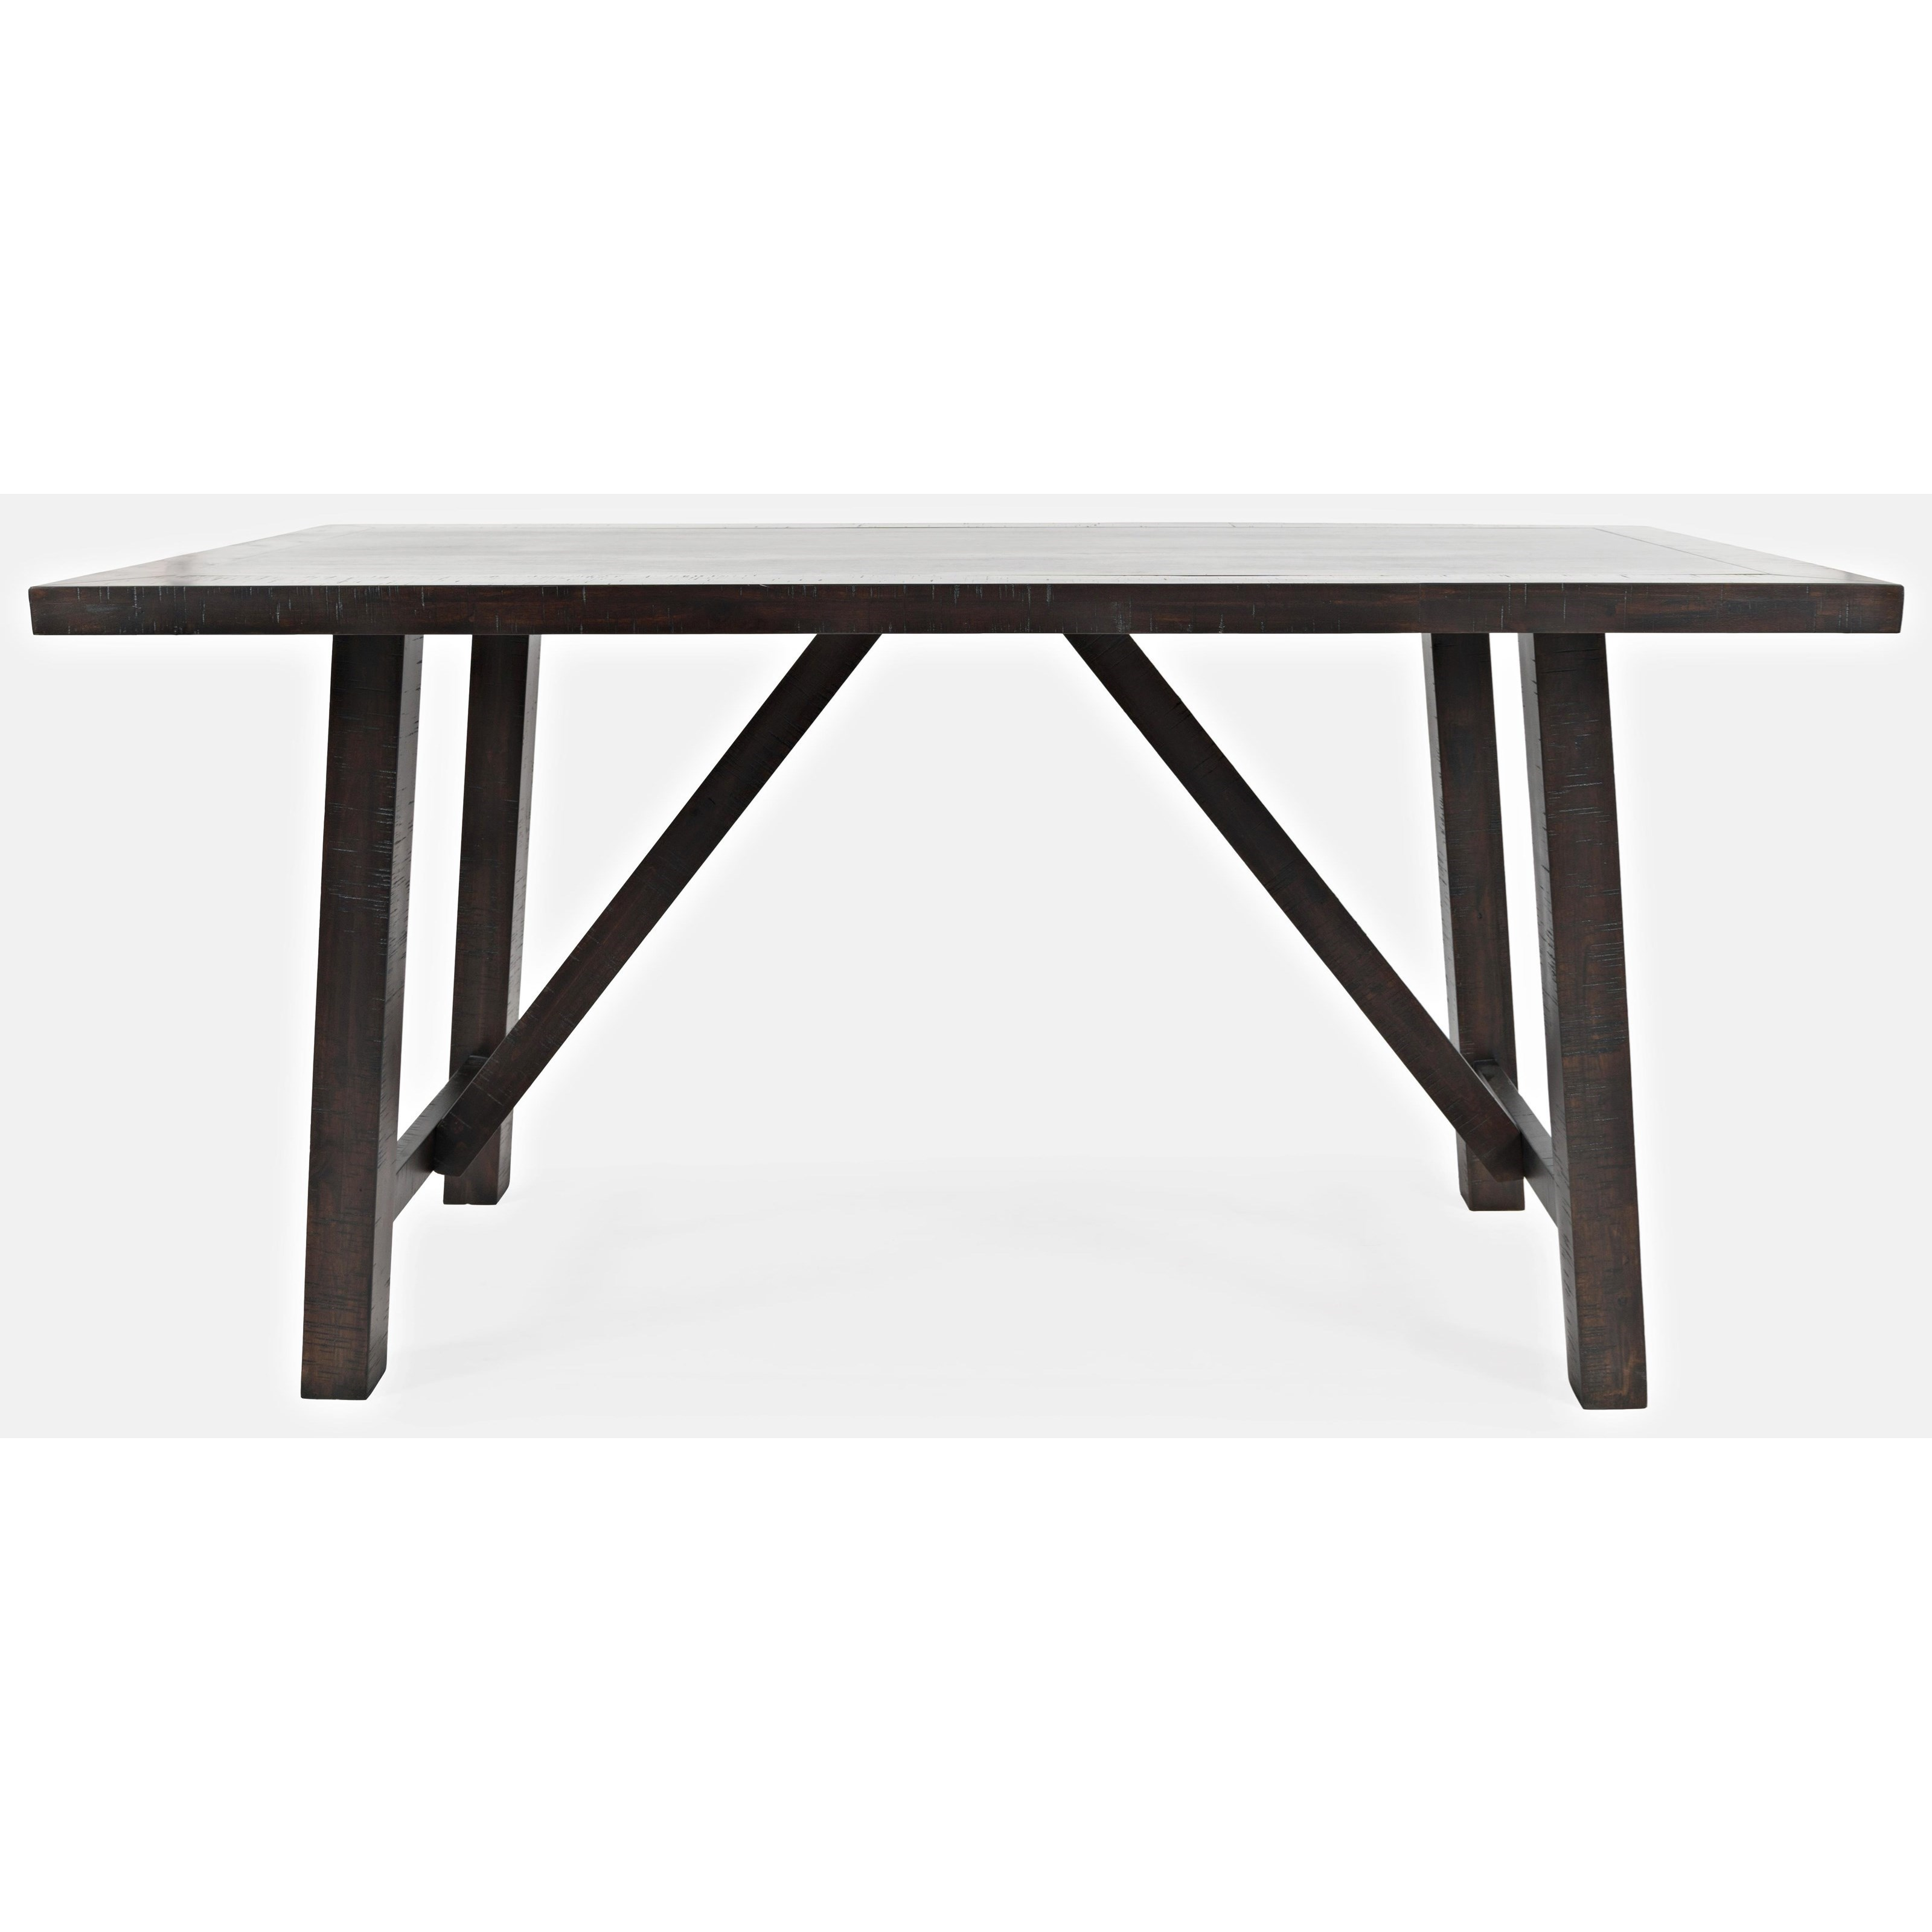 American Rustics Trestle Counter Table by Jofran at Simply Home by Lindy's